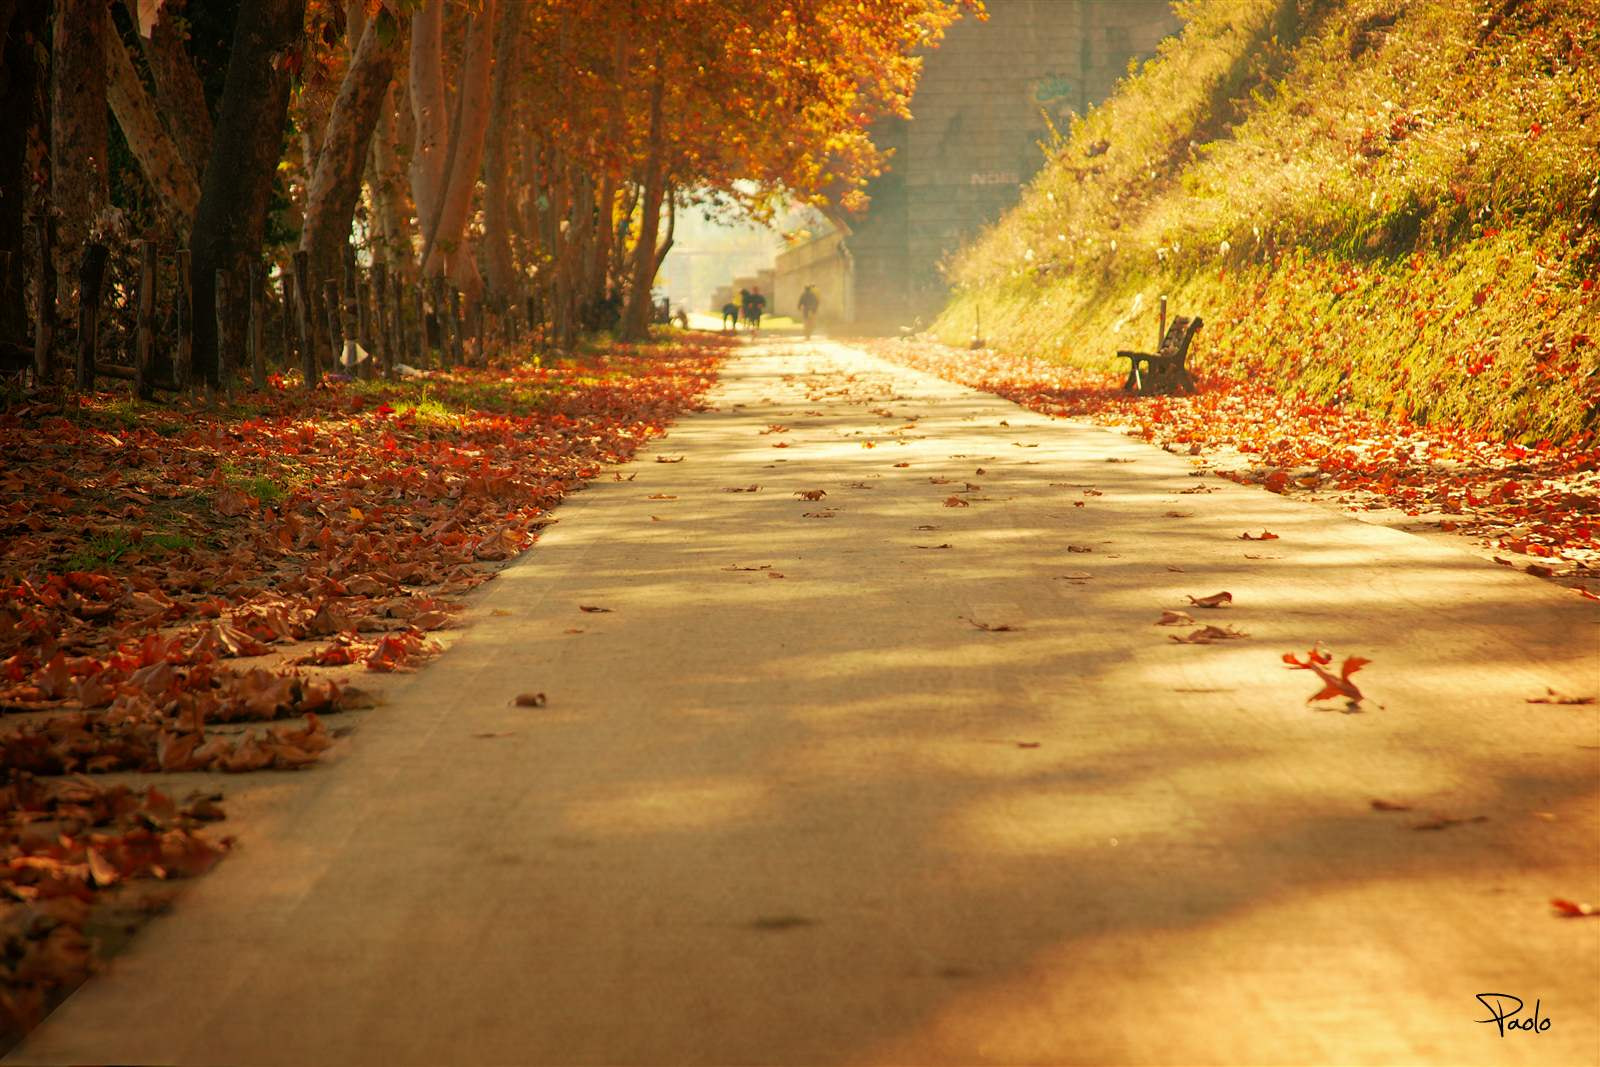 Photograph Autunno Romano - Autumn in Rome by Paolo Trofa on 500px